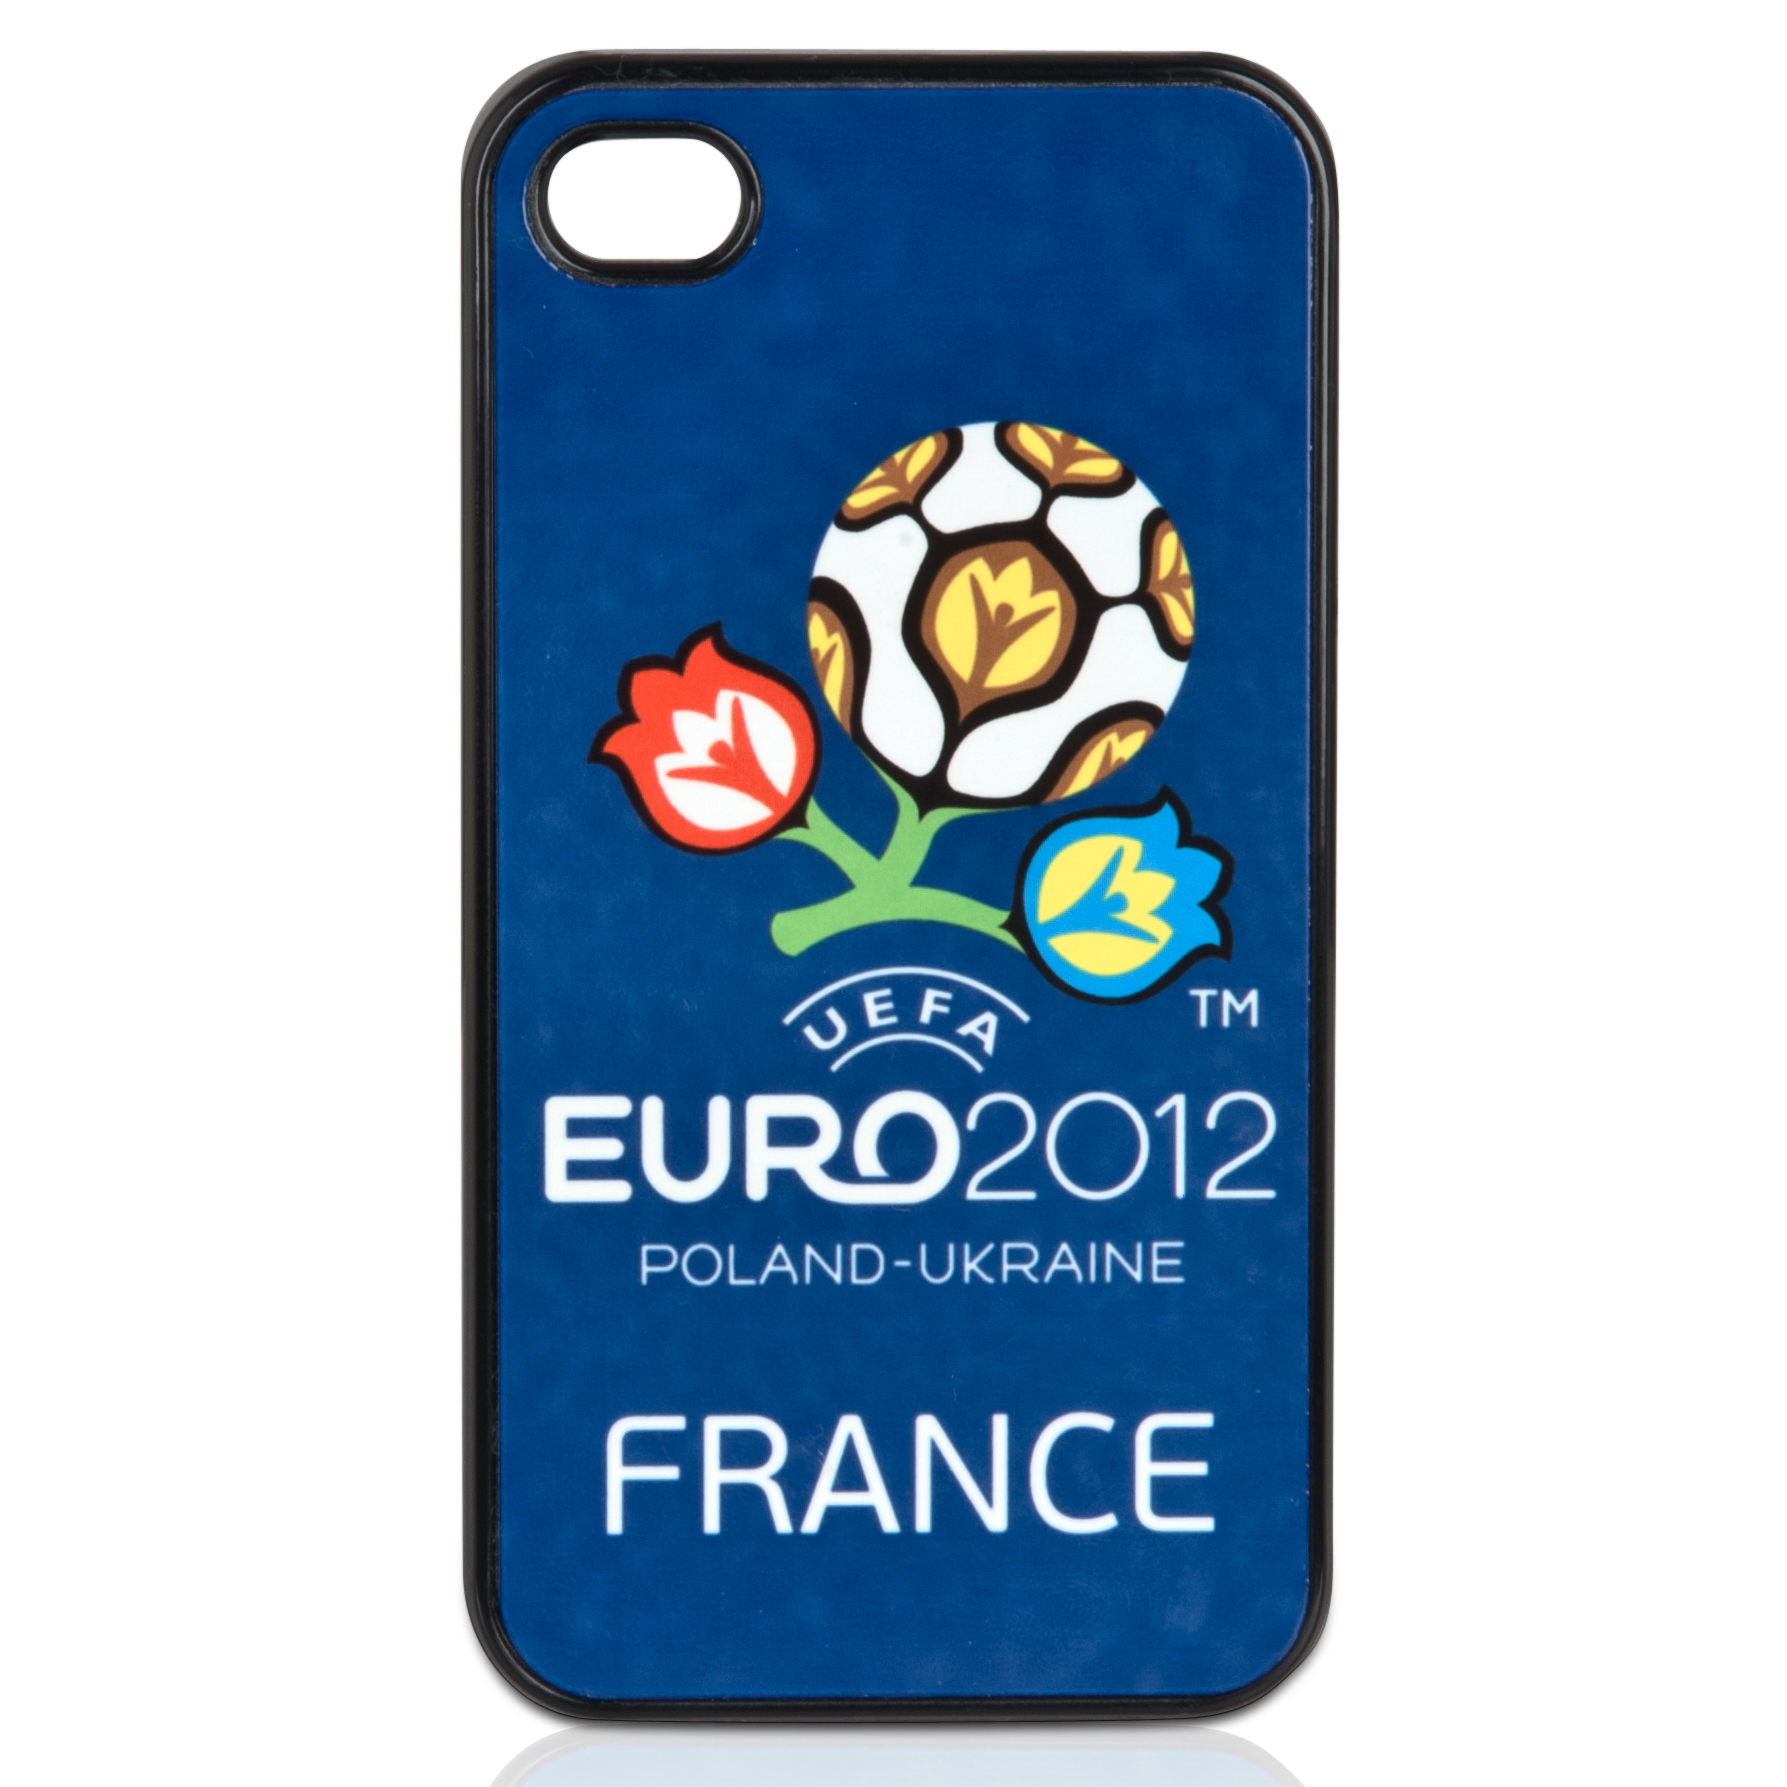 France Country Iphone 4 Cover - France